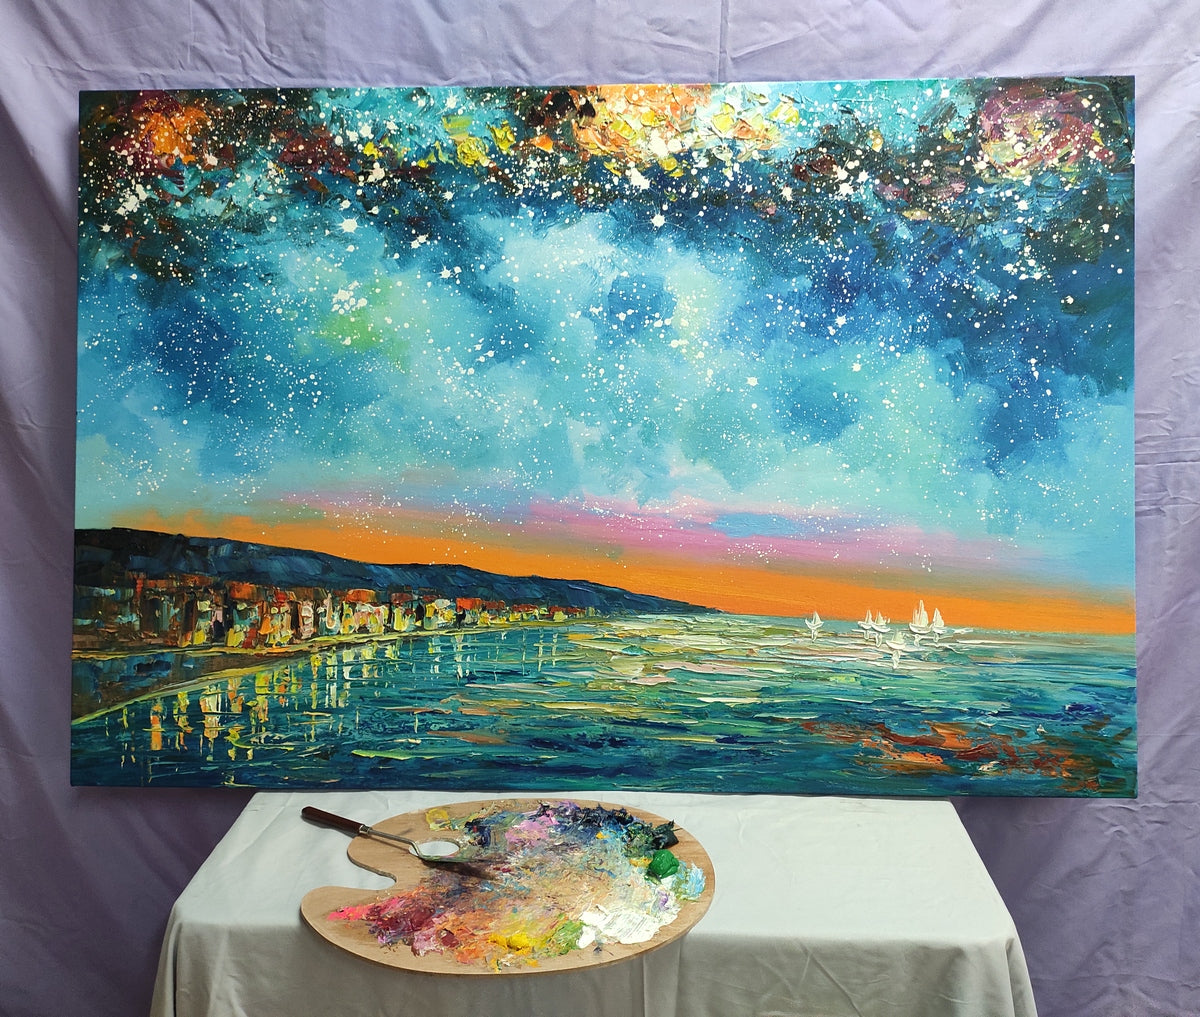 Starry Night Sky Painting, Oil Painting on Canvas, Original Landscape Paintings, Landscape Canvas Paintings, Palette Knife Paintings